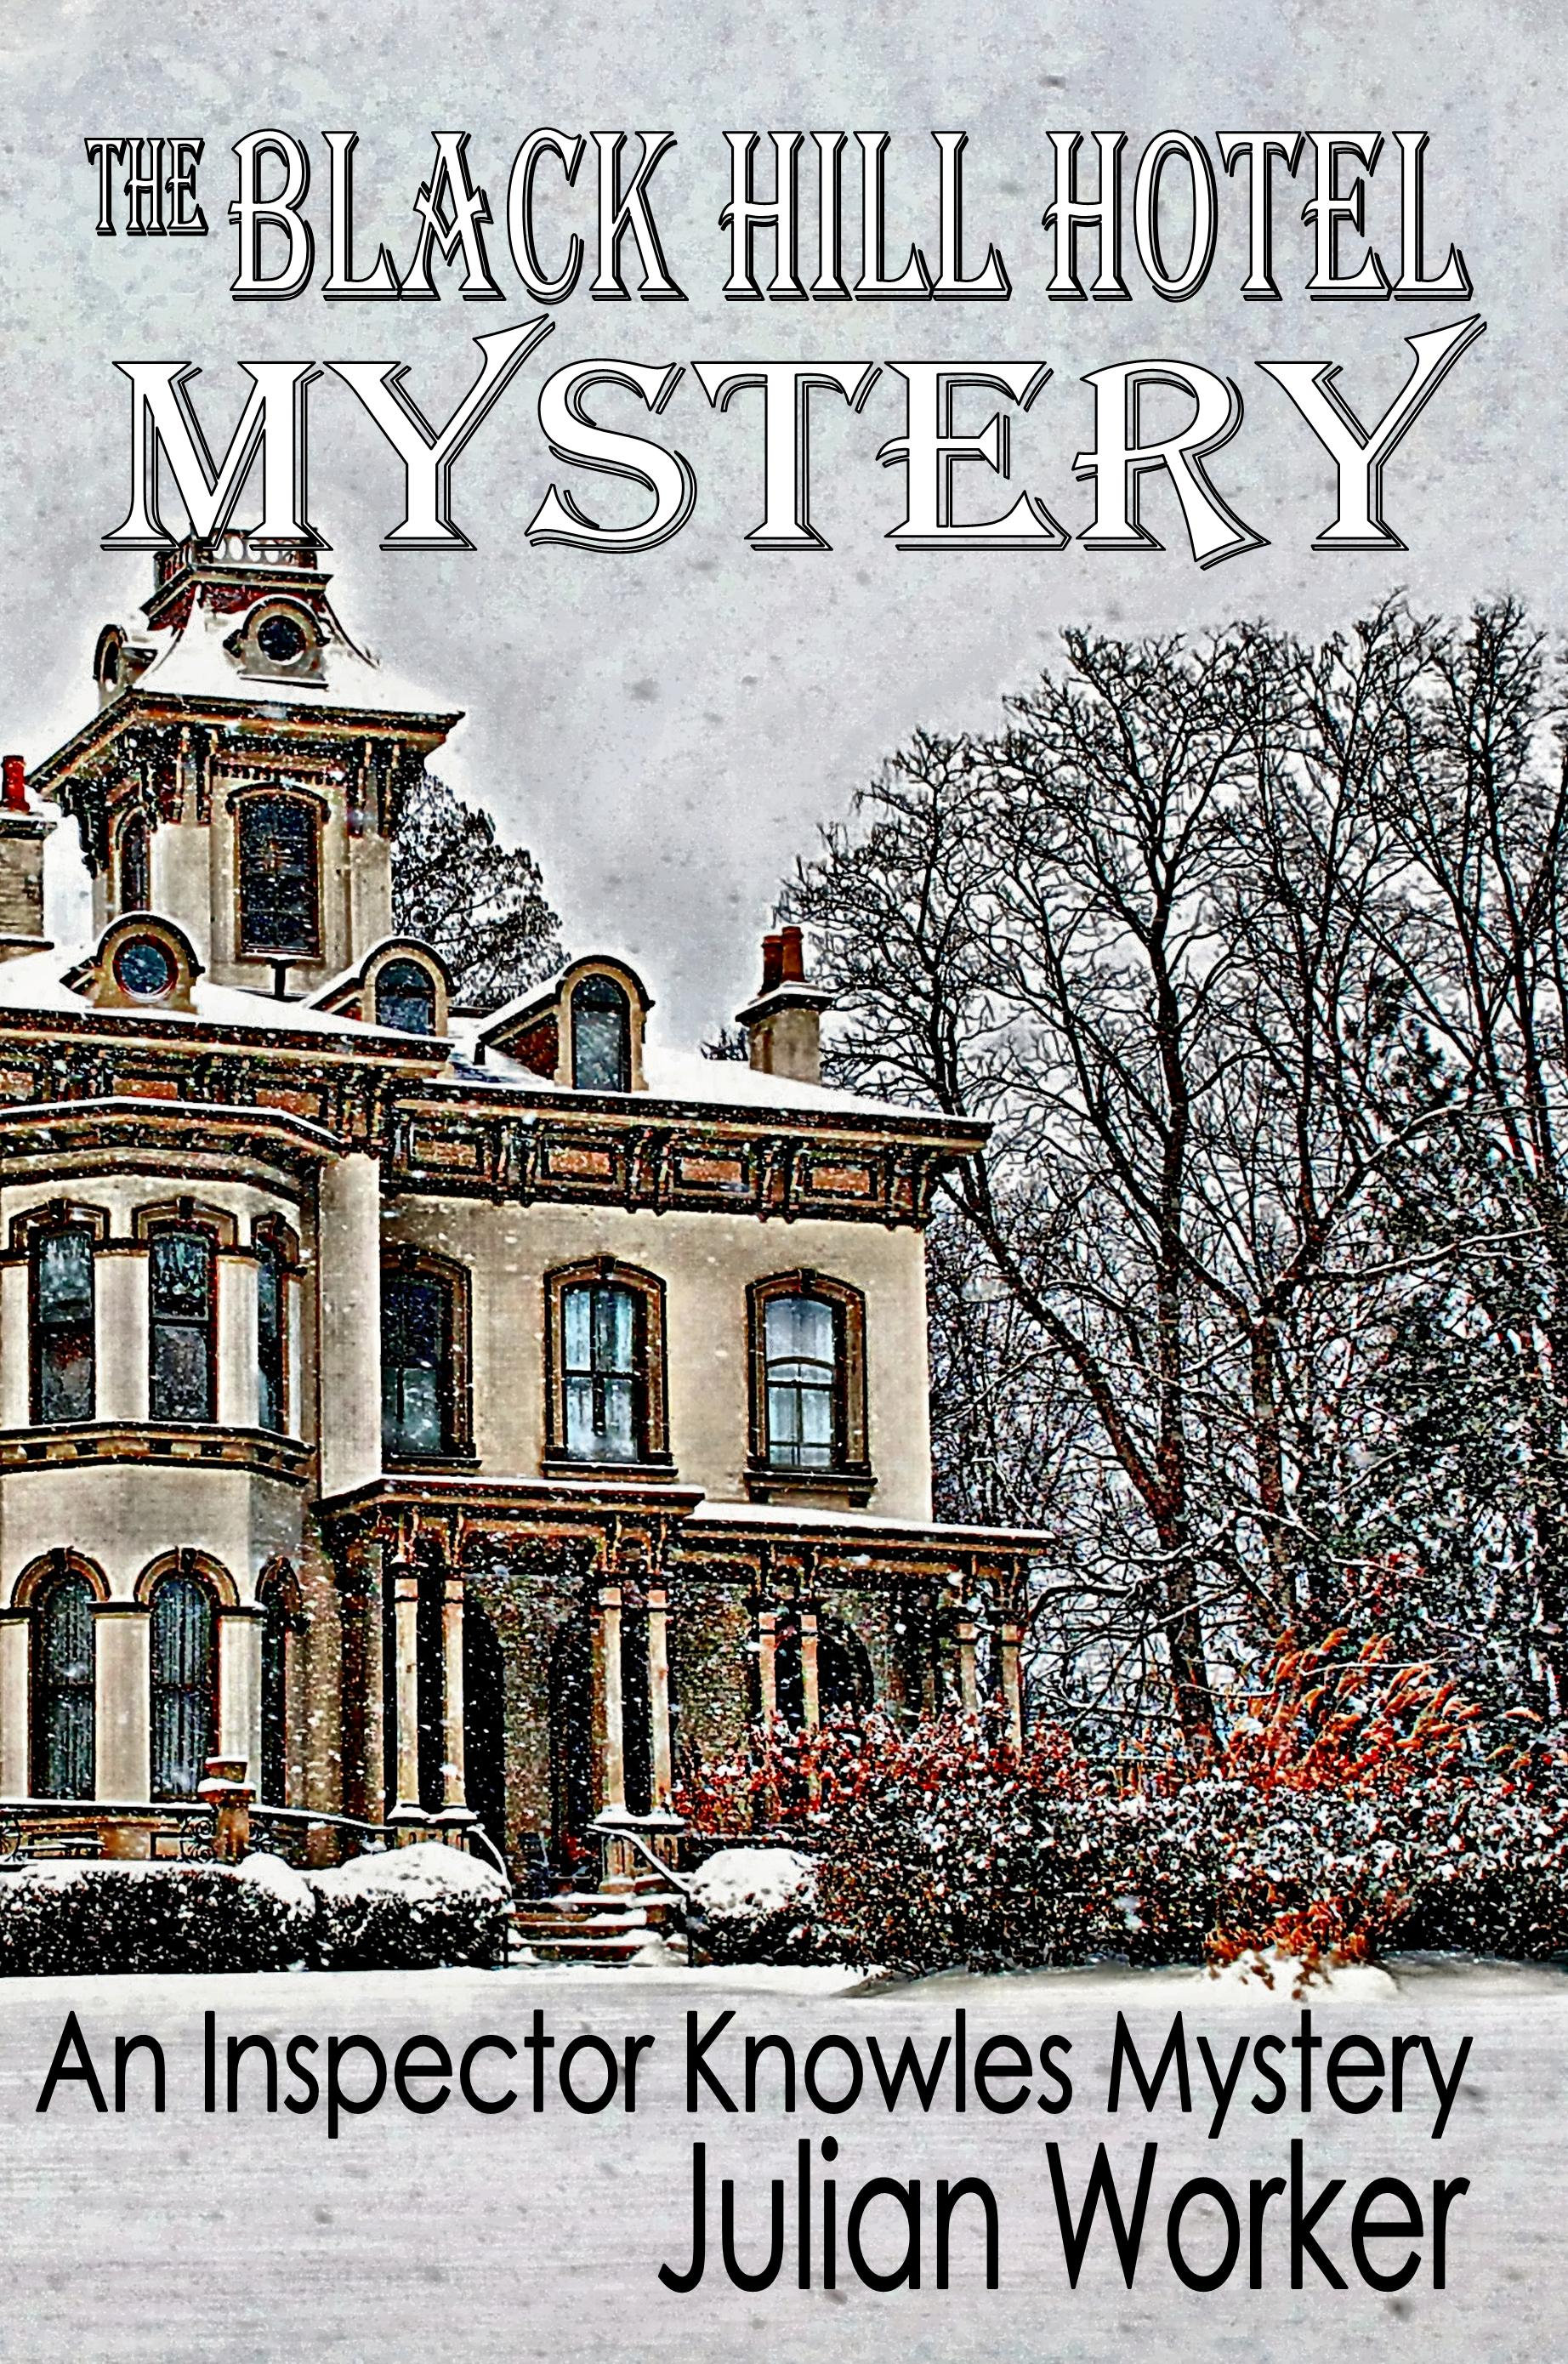 The Black Hill Hotel Mystery – 8